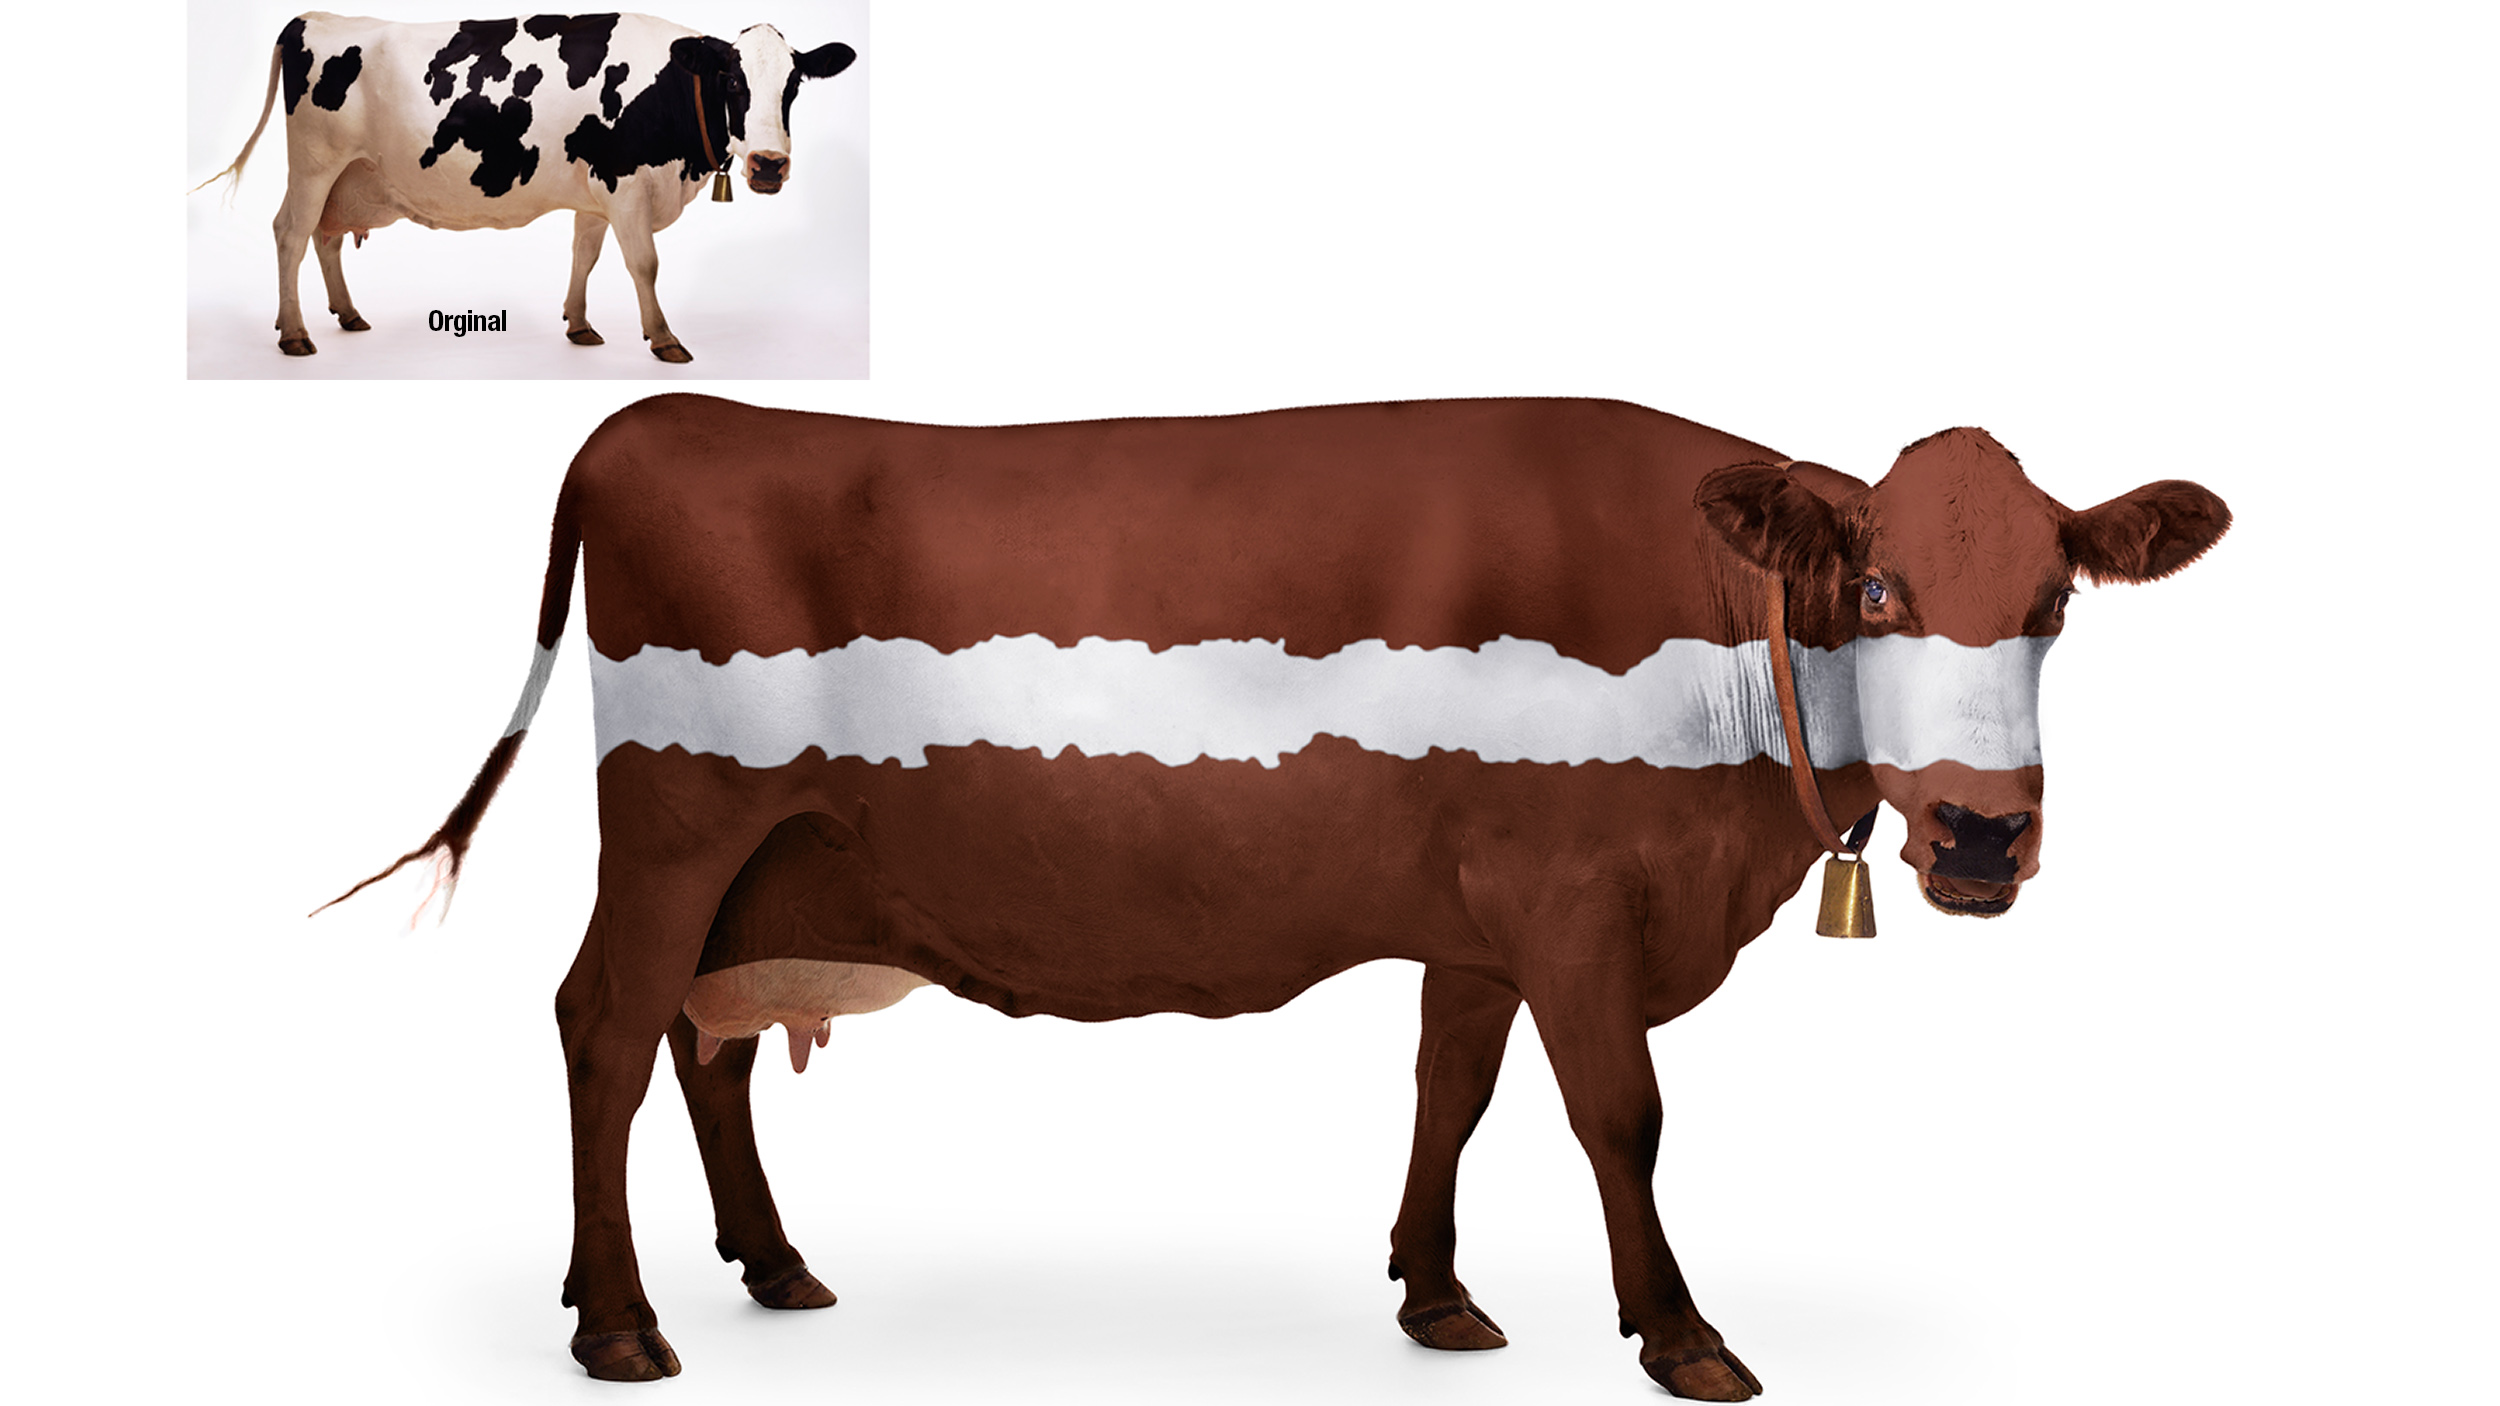 Cow-Creative-imageing-BigFishGraphicDesign.jpg